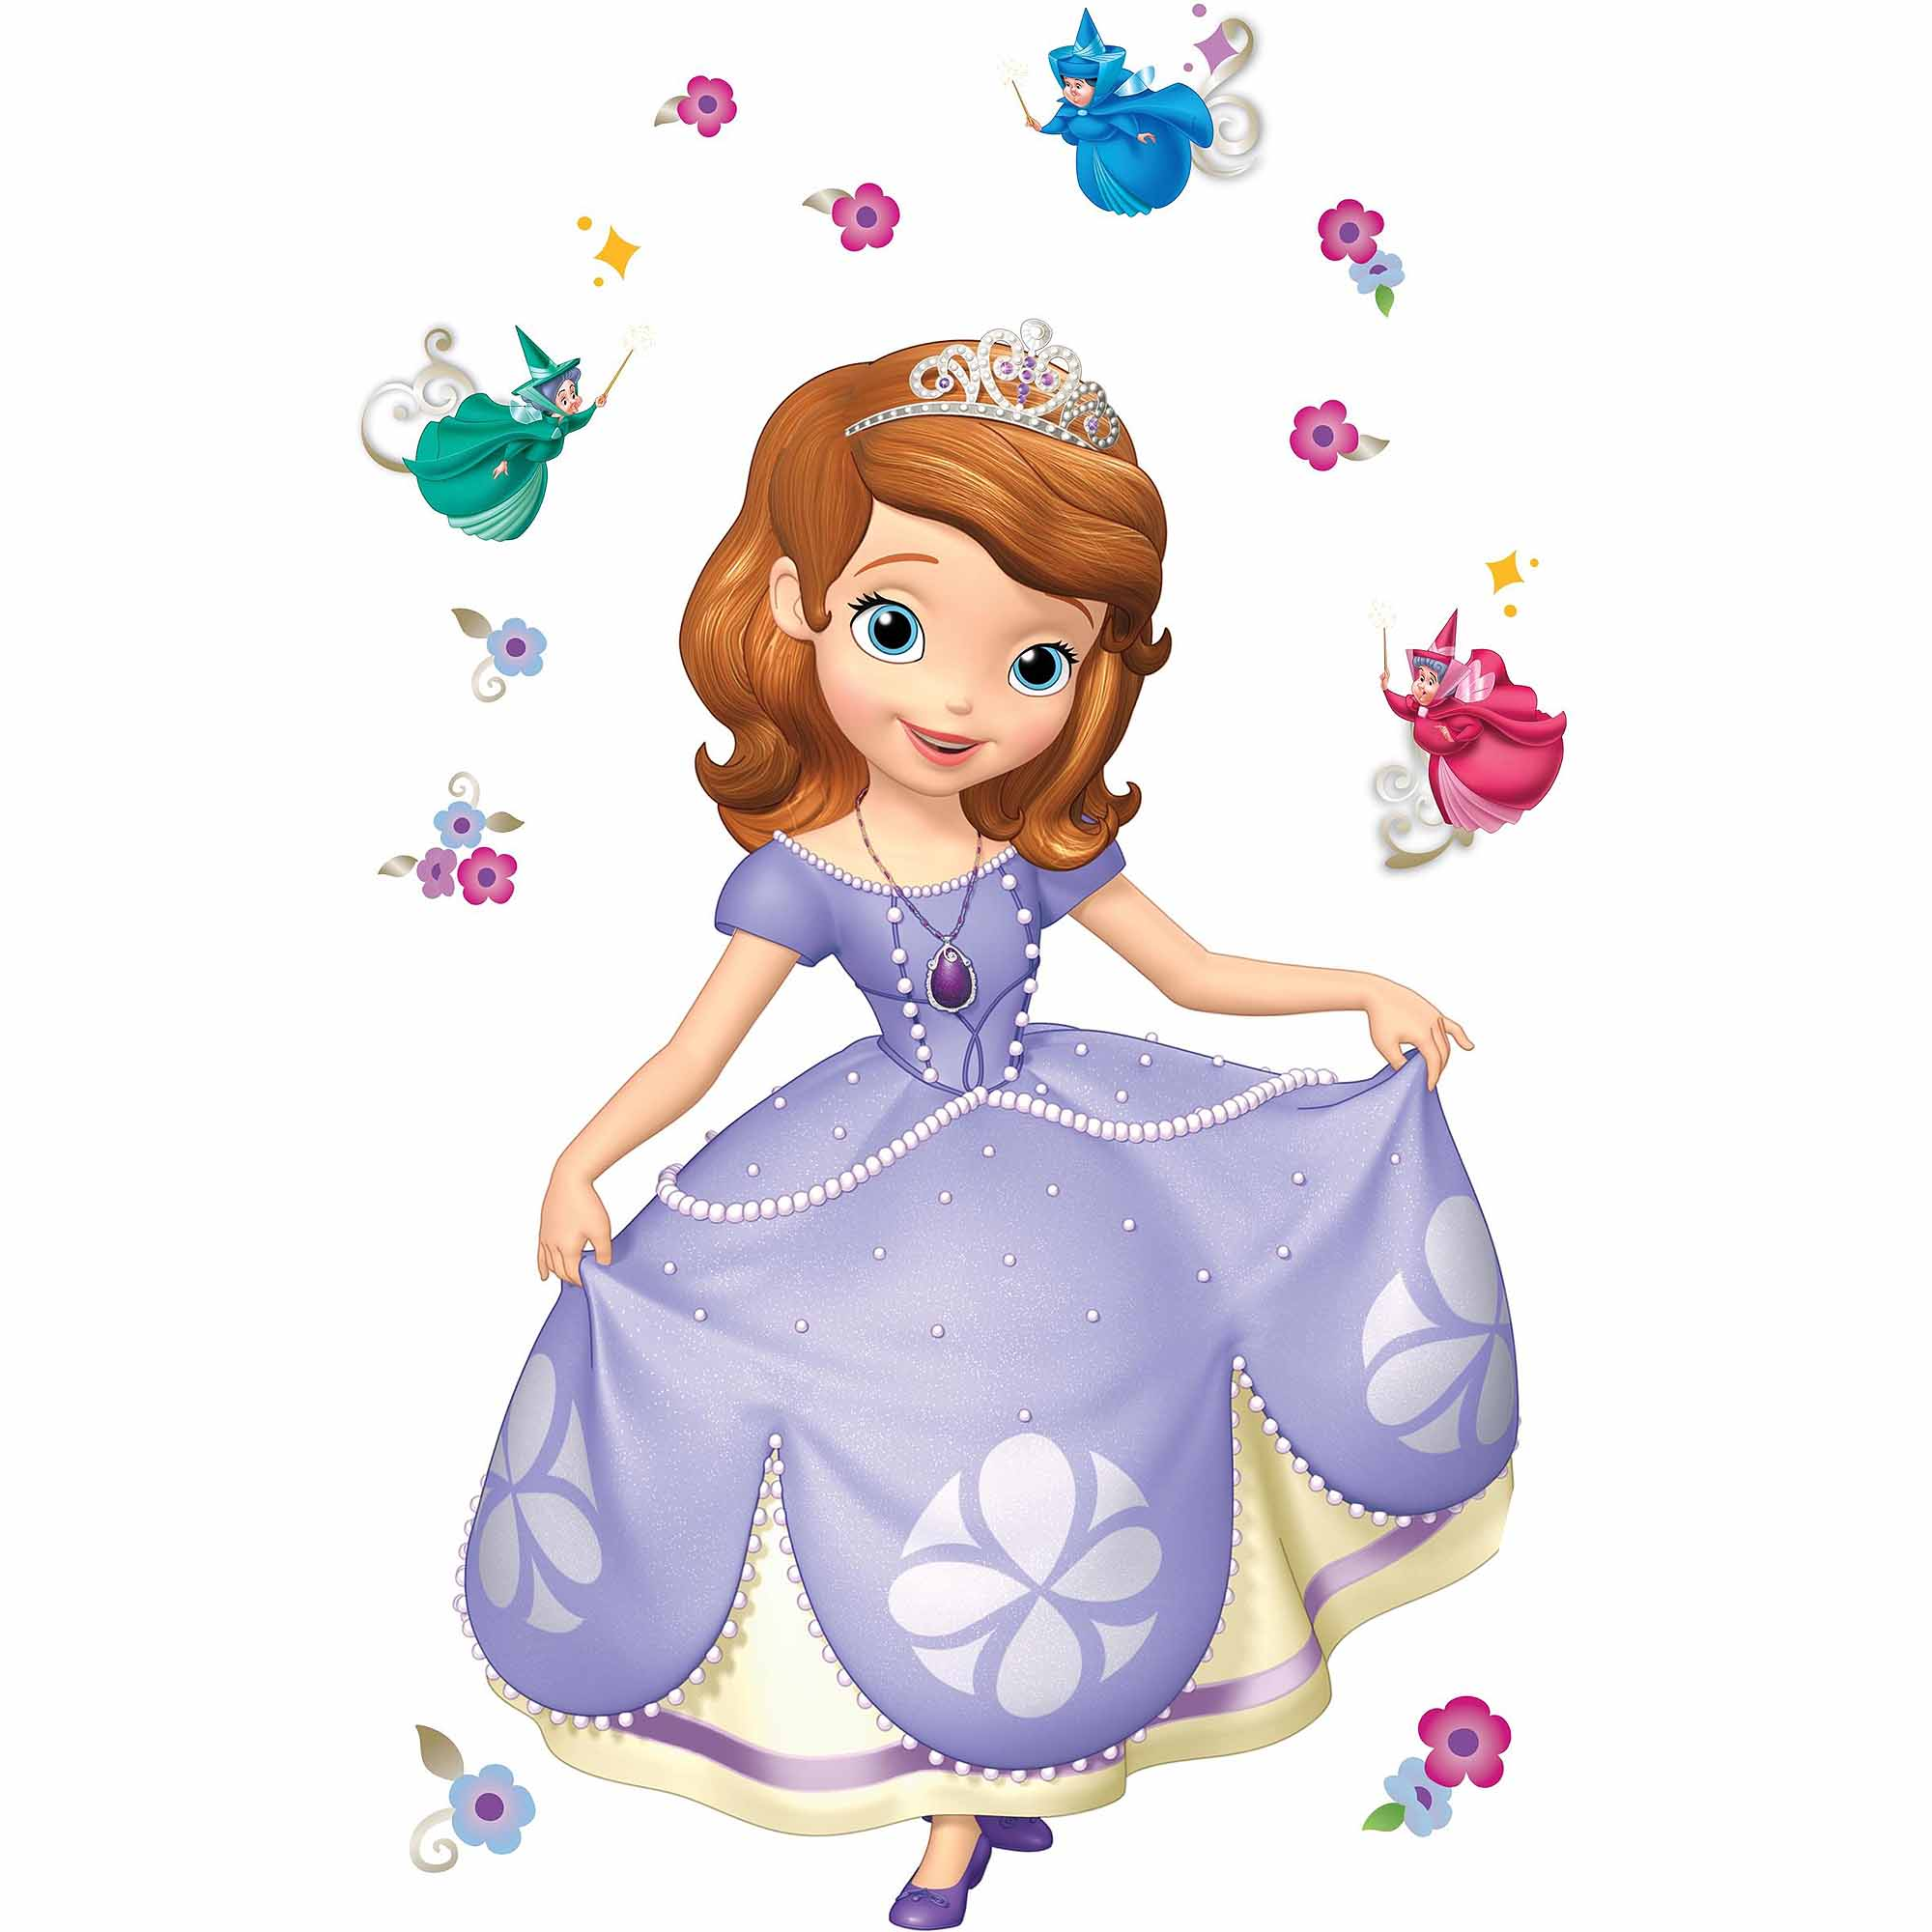 Sofia the First Peel-and-Stick Giant Wall Decals